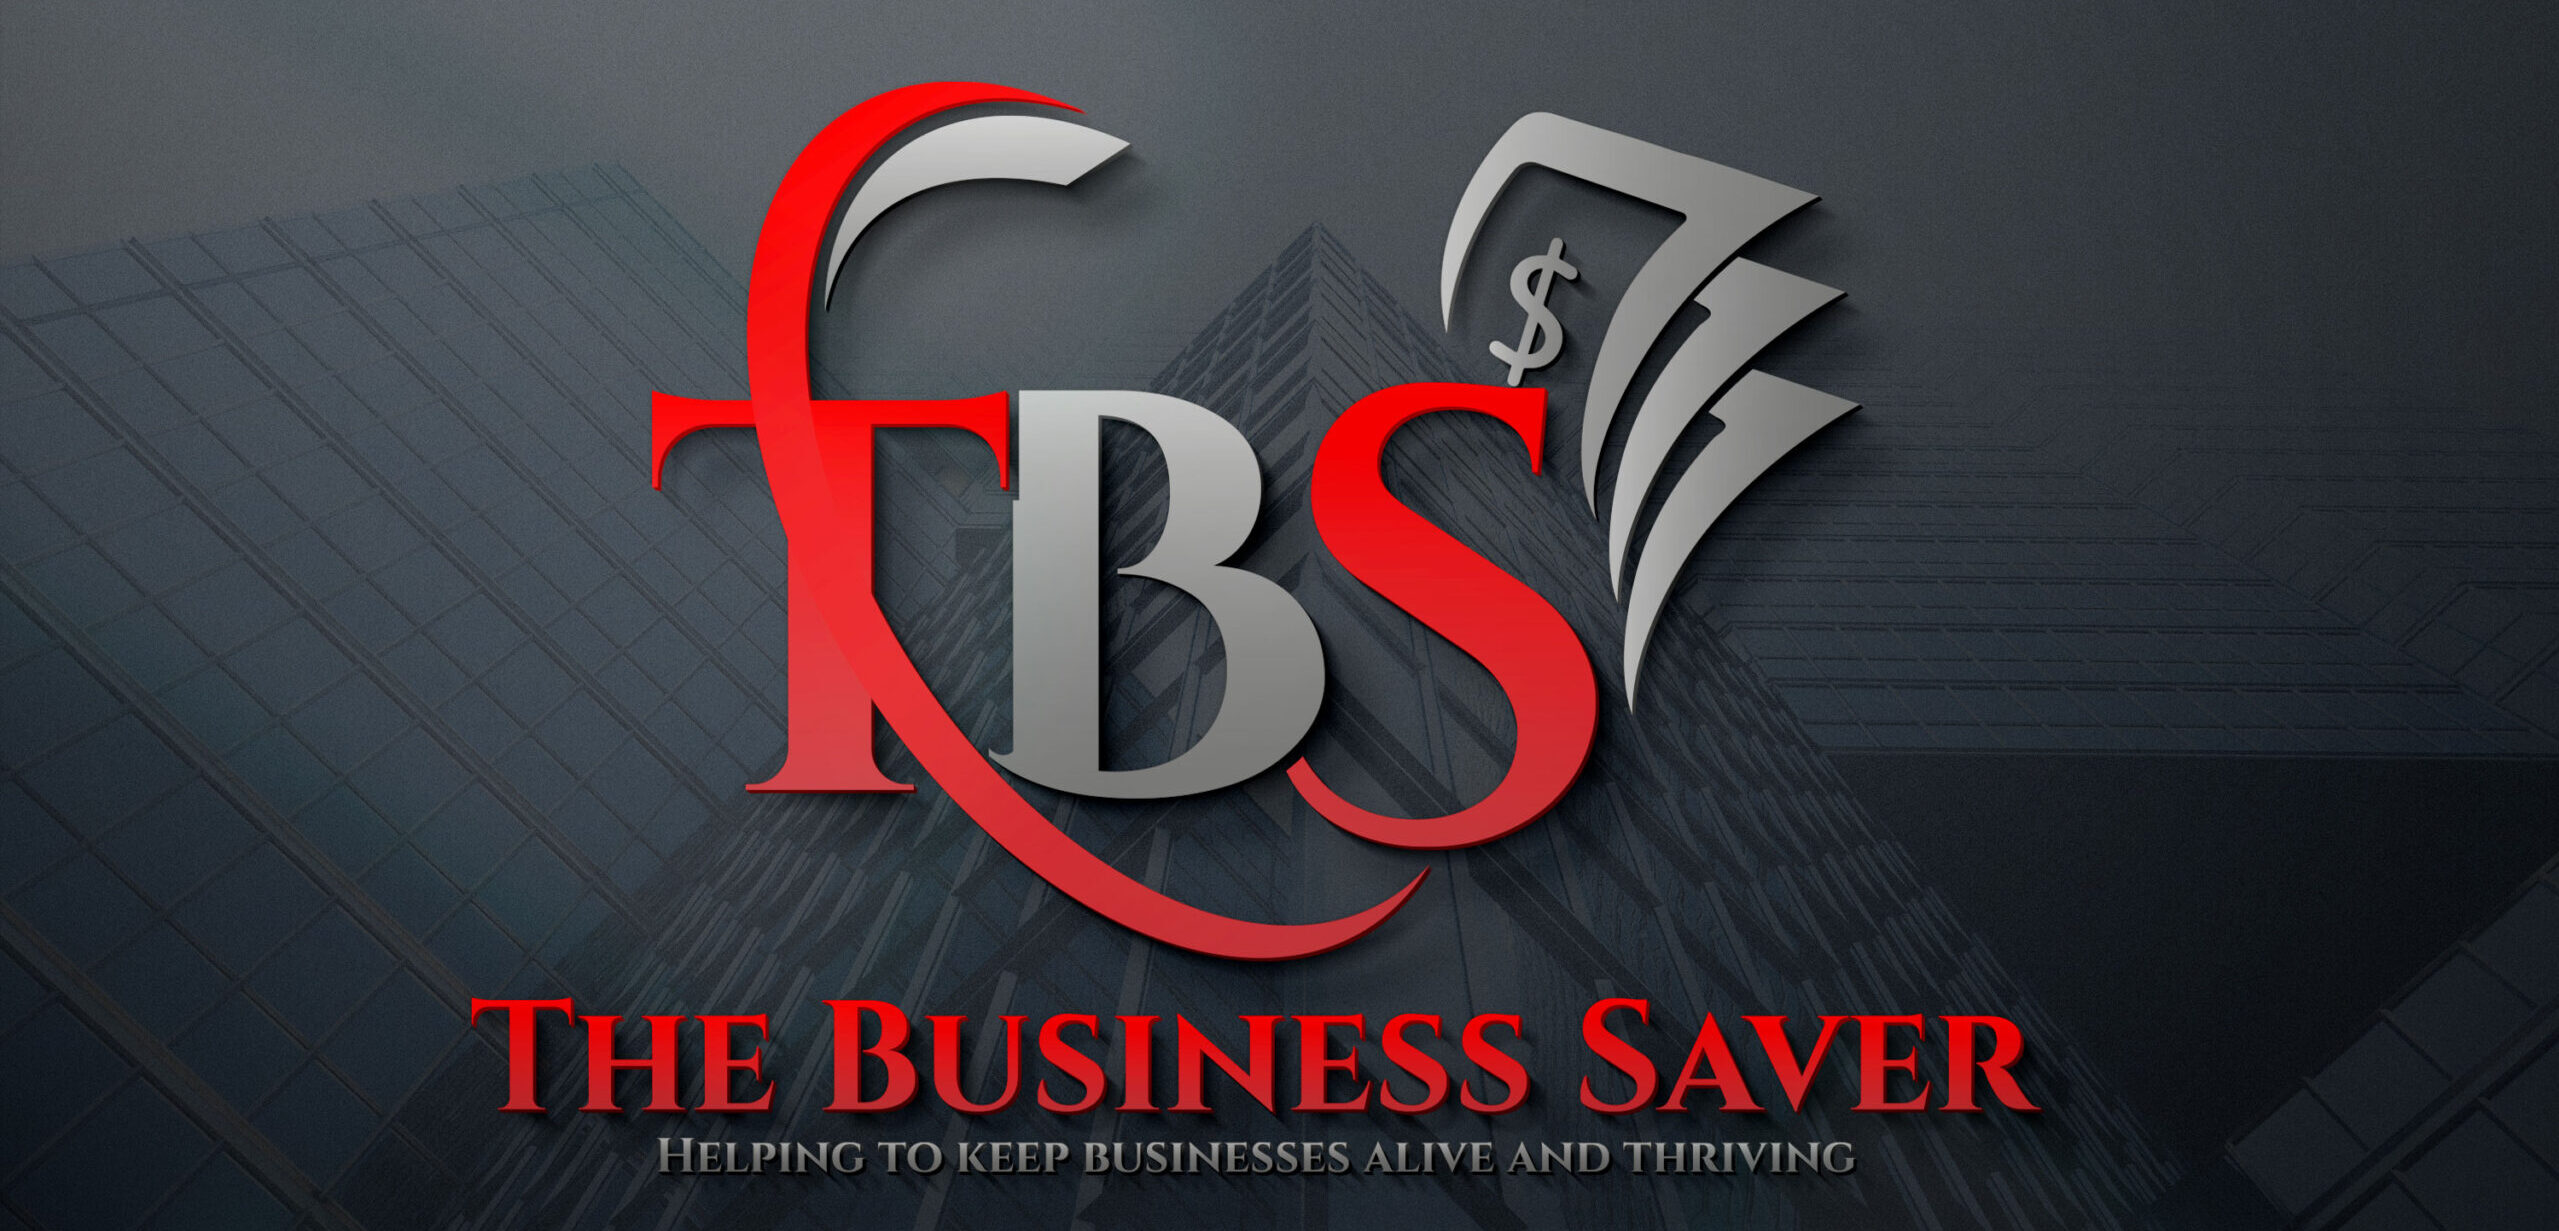 The Business Saver